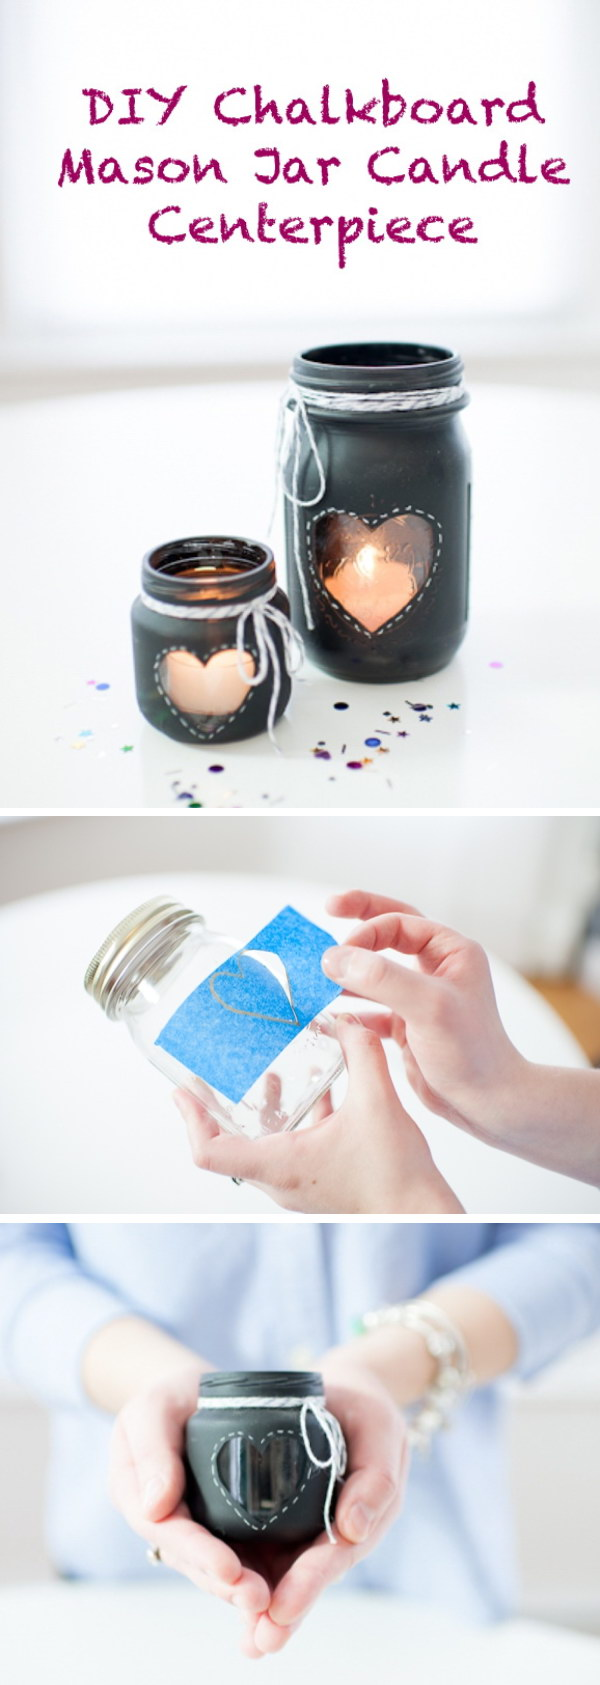 DIY Chalkboard Mason Jar Candle Centerpiece.